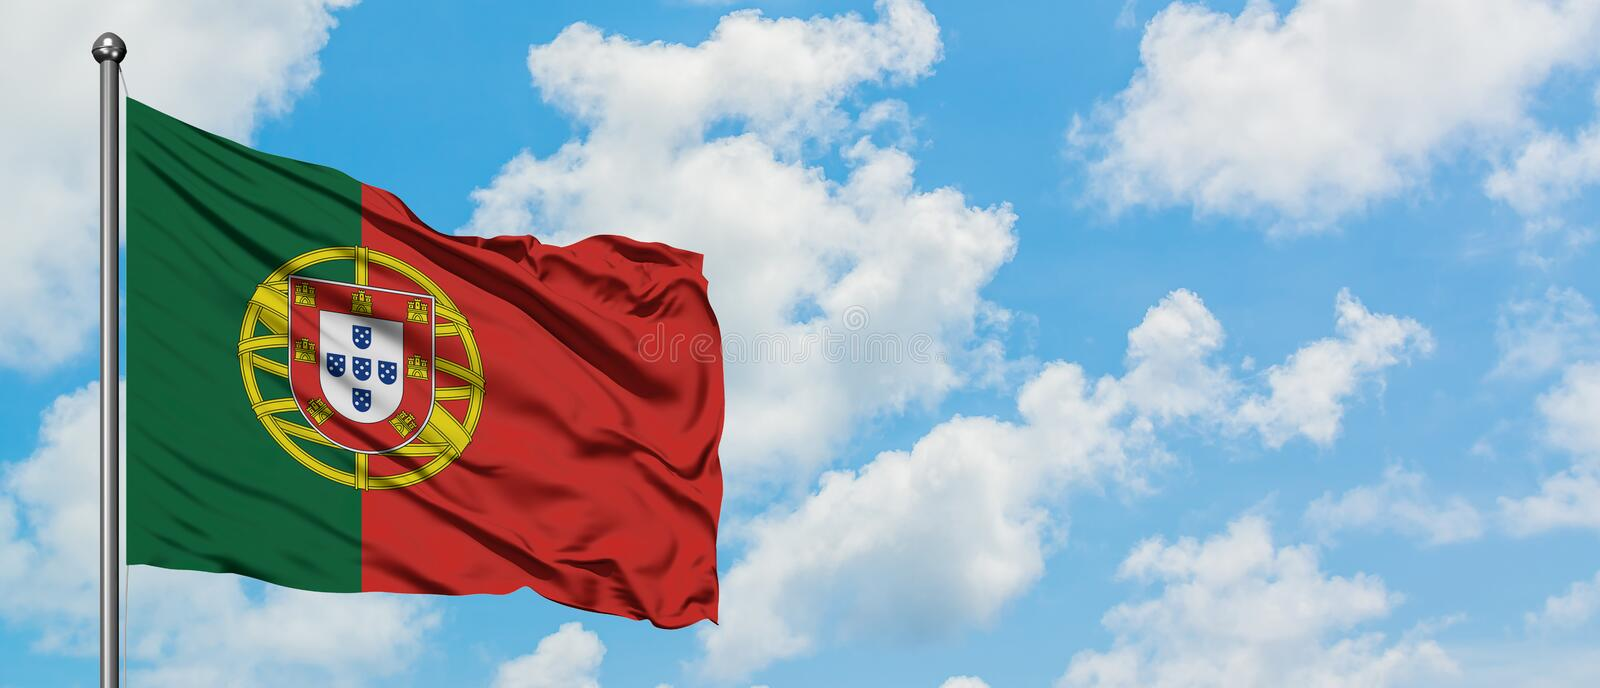 Portugal flag waving in the wind against white cloudy blue sky. Diplomacy concept, international relations.  stock images